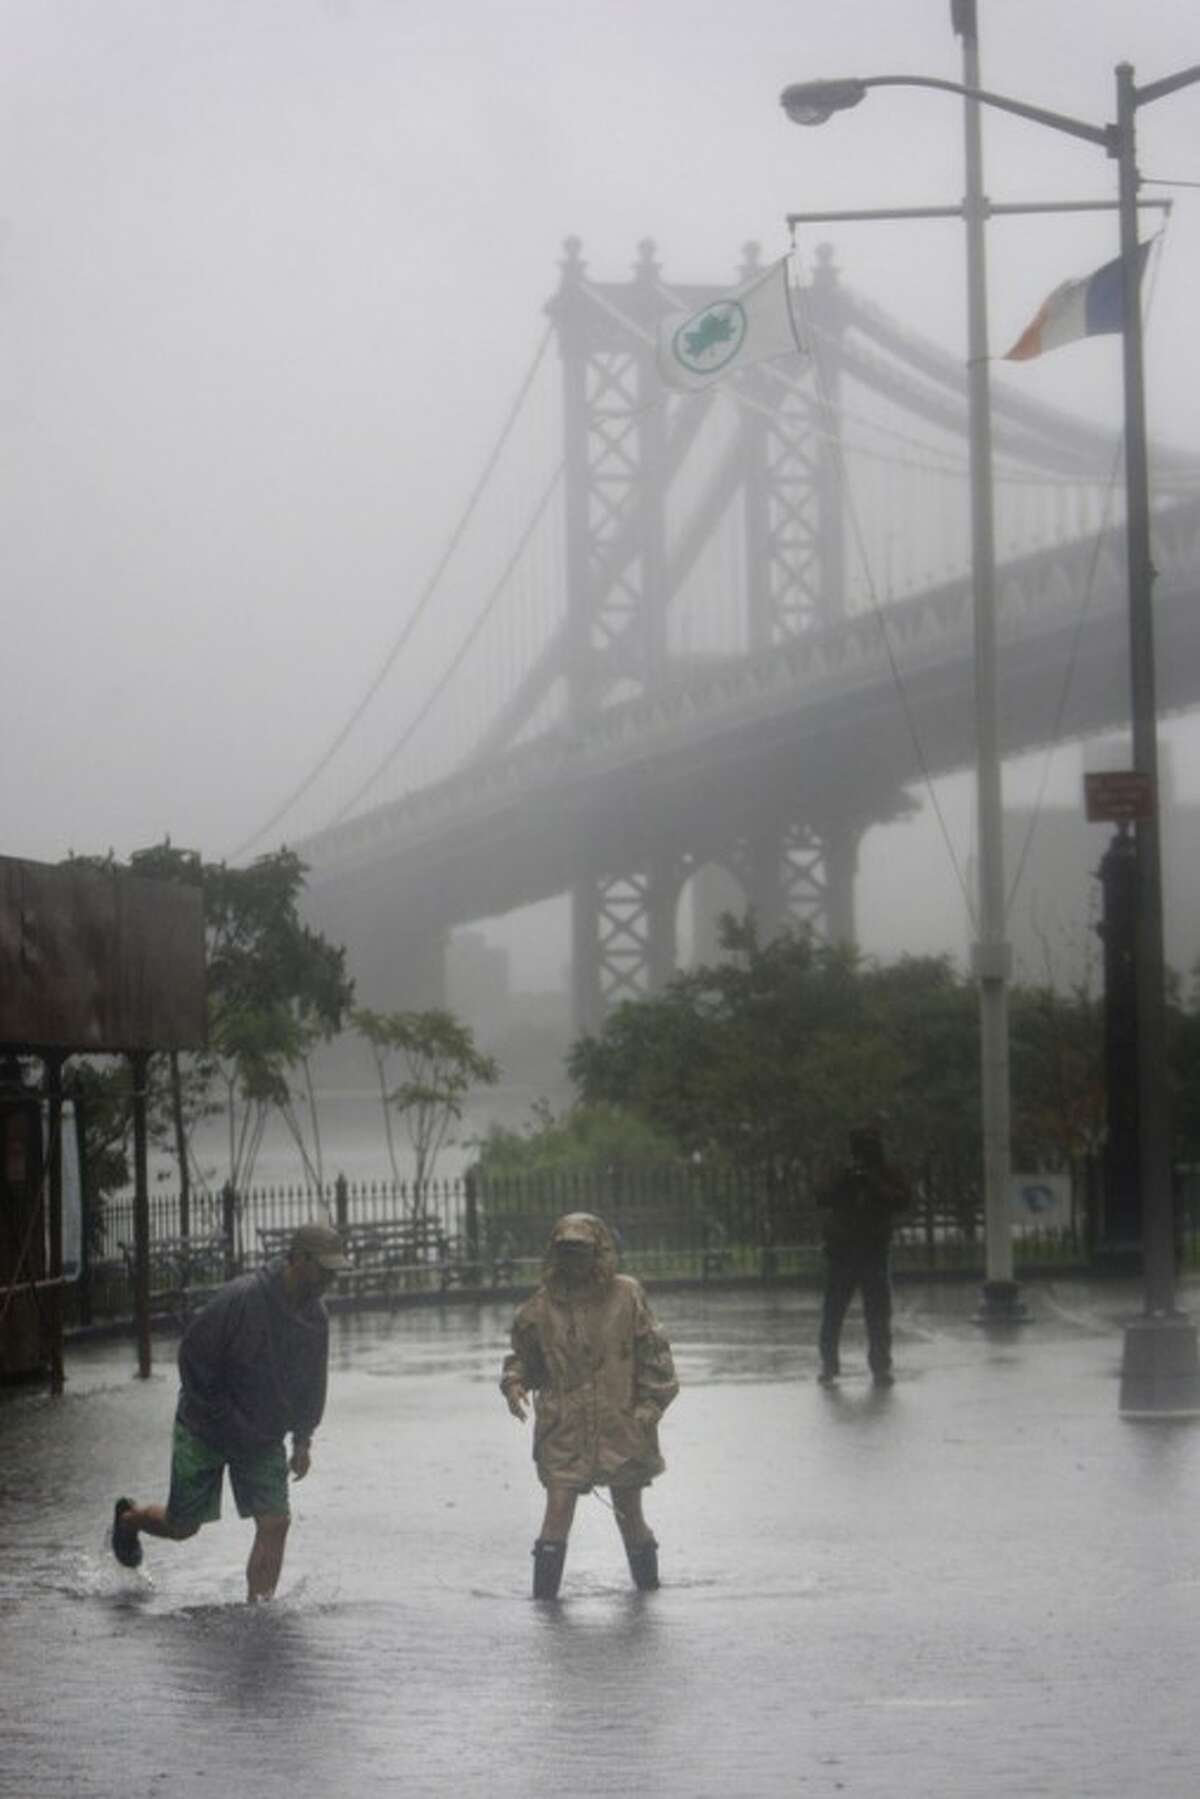 FILE - In this Aug. 28, 2011, file photo, people near New York's Brooklyn Bridge wade through floodwaters brought on by Hurricane Irene, which weakened to a tropical storm just before hitting New York's Coney Island. Two years prior to Irene, 100 scientists and engineers met to sketch out a bold defense: massive, moveable barriers to shield New York City from a storm-stirred sea. The network would protect Manhattan and parts of the four outer boroughs and New Jersey, but not some vulnerable swaths of Brooklyn and Queens. (AP Photo/Seth Wenig, File)